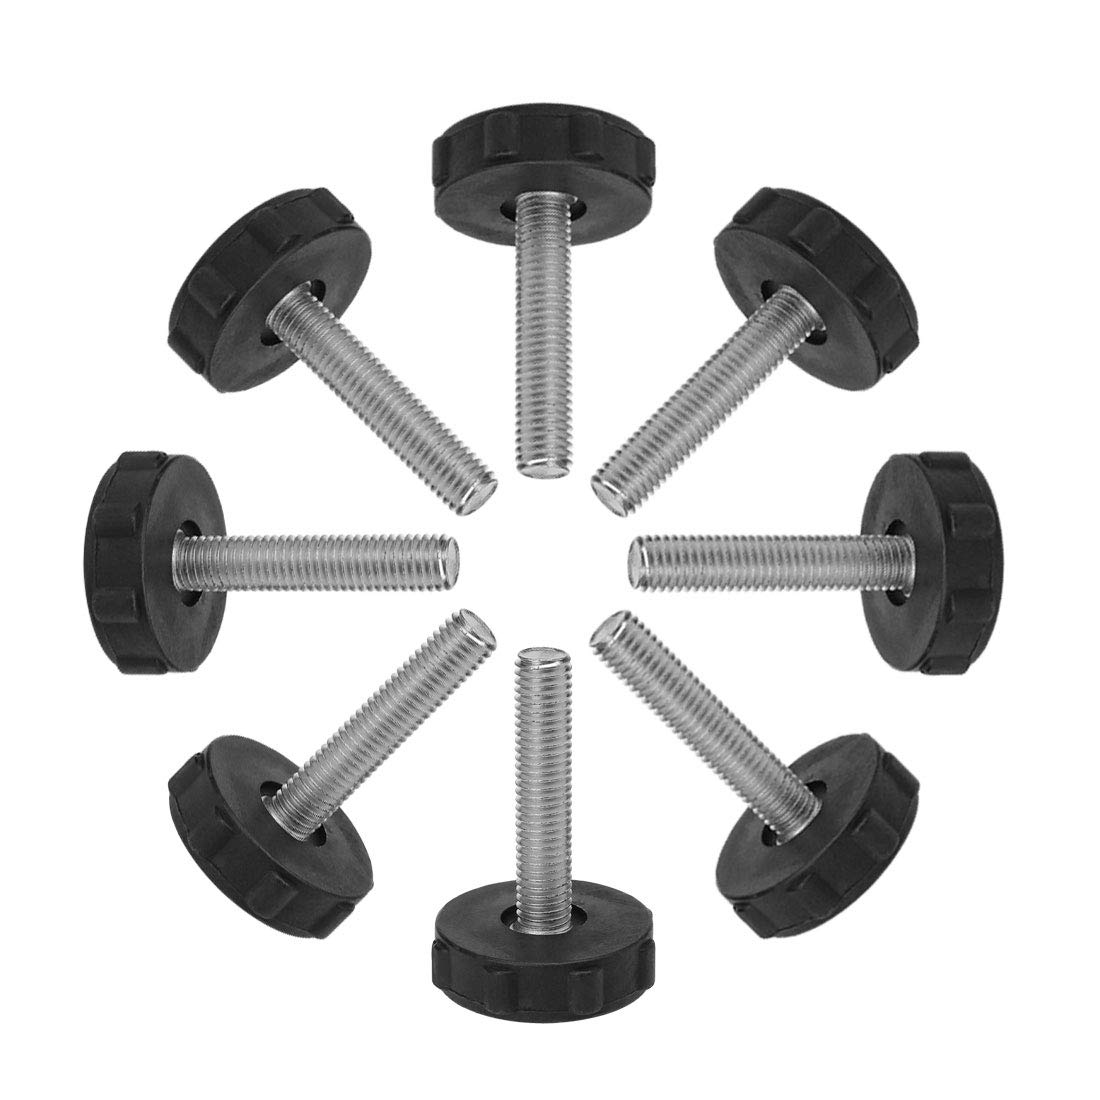 uxcell M10 x 50 x 40mm Screw on Furniture Glide Leveling Feet Adjustable Leveler Pad for Chair Industrial Machine Desk Leg 8 Pack